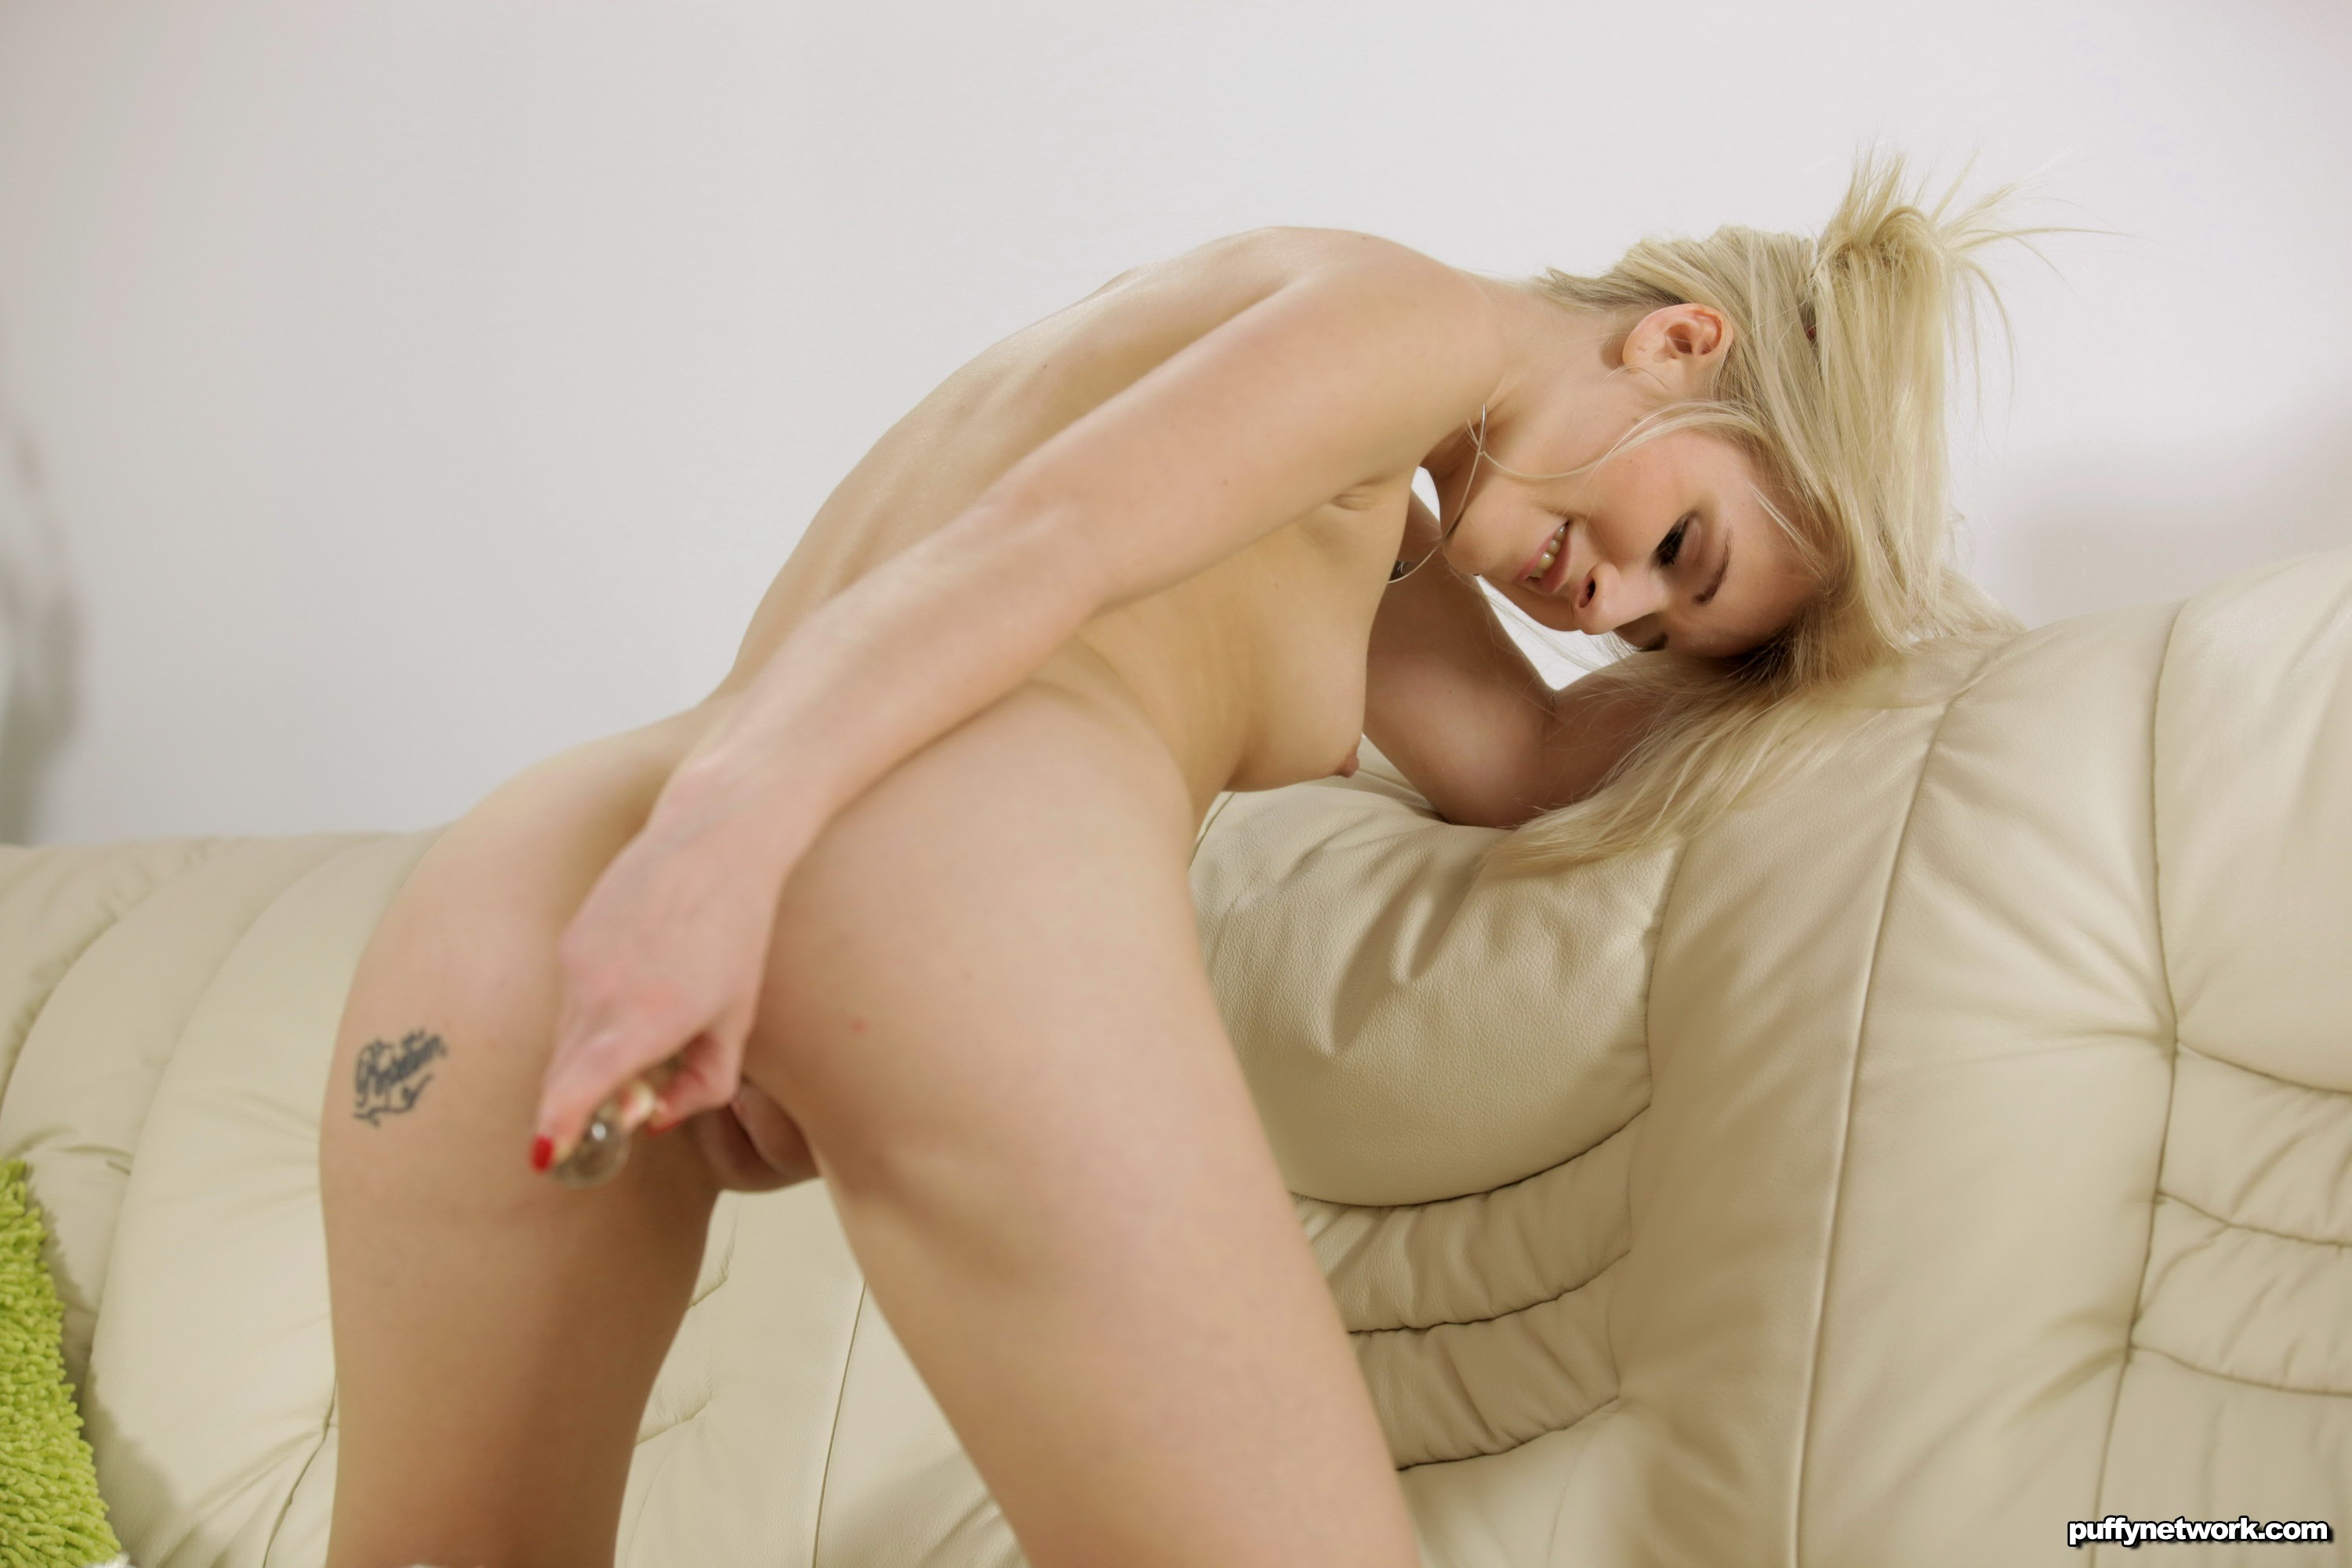 Cute blonde likes showing her pussy photos